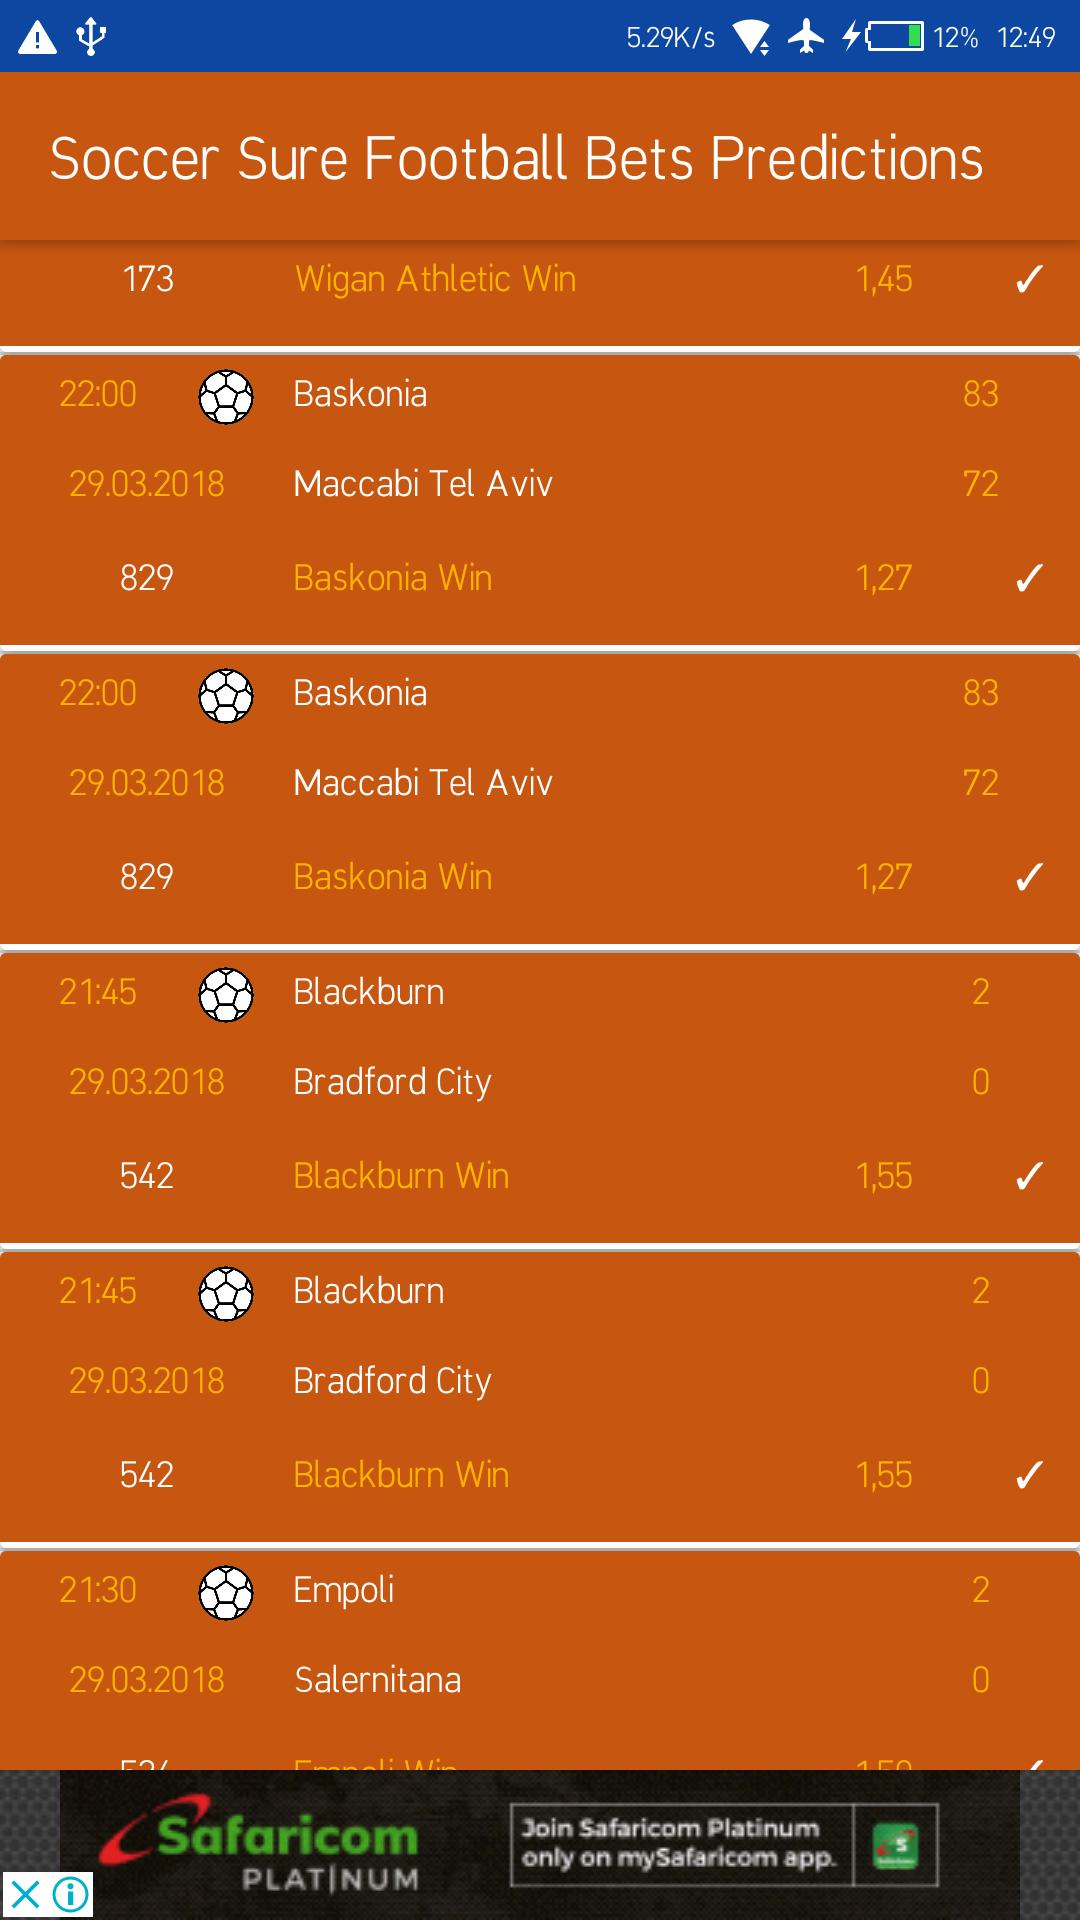 Soccer Sure Football Bets Predictions for Android - APK Download